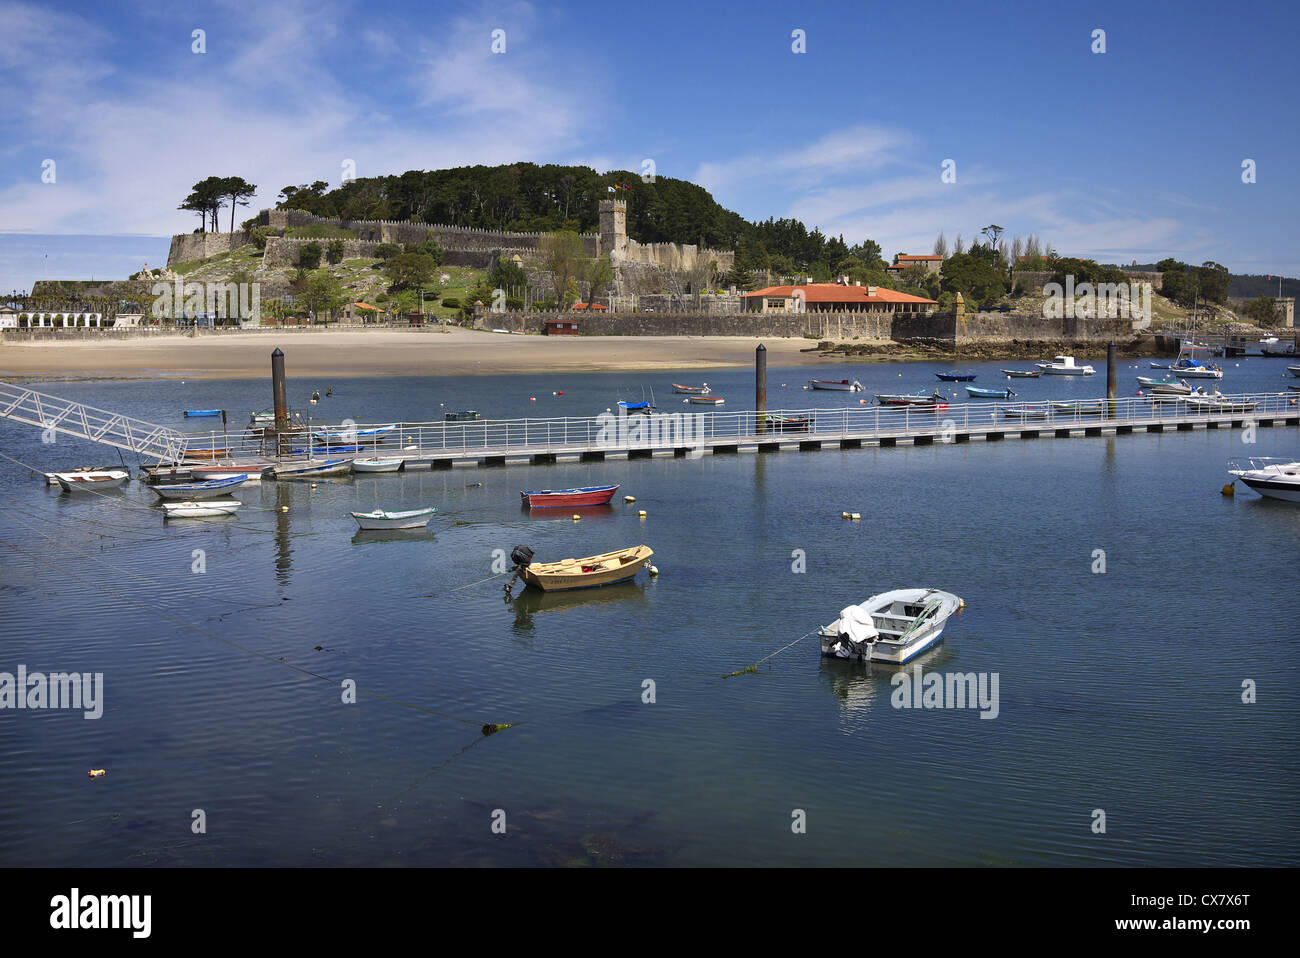 L'Castilo de Montrreal à Baiona en Galice, Espagne. Photo Stock